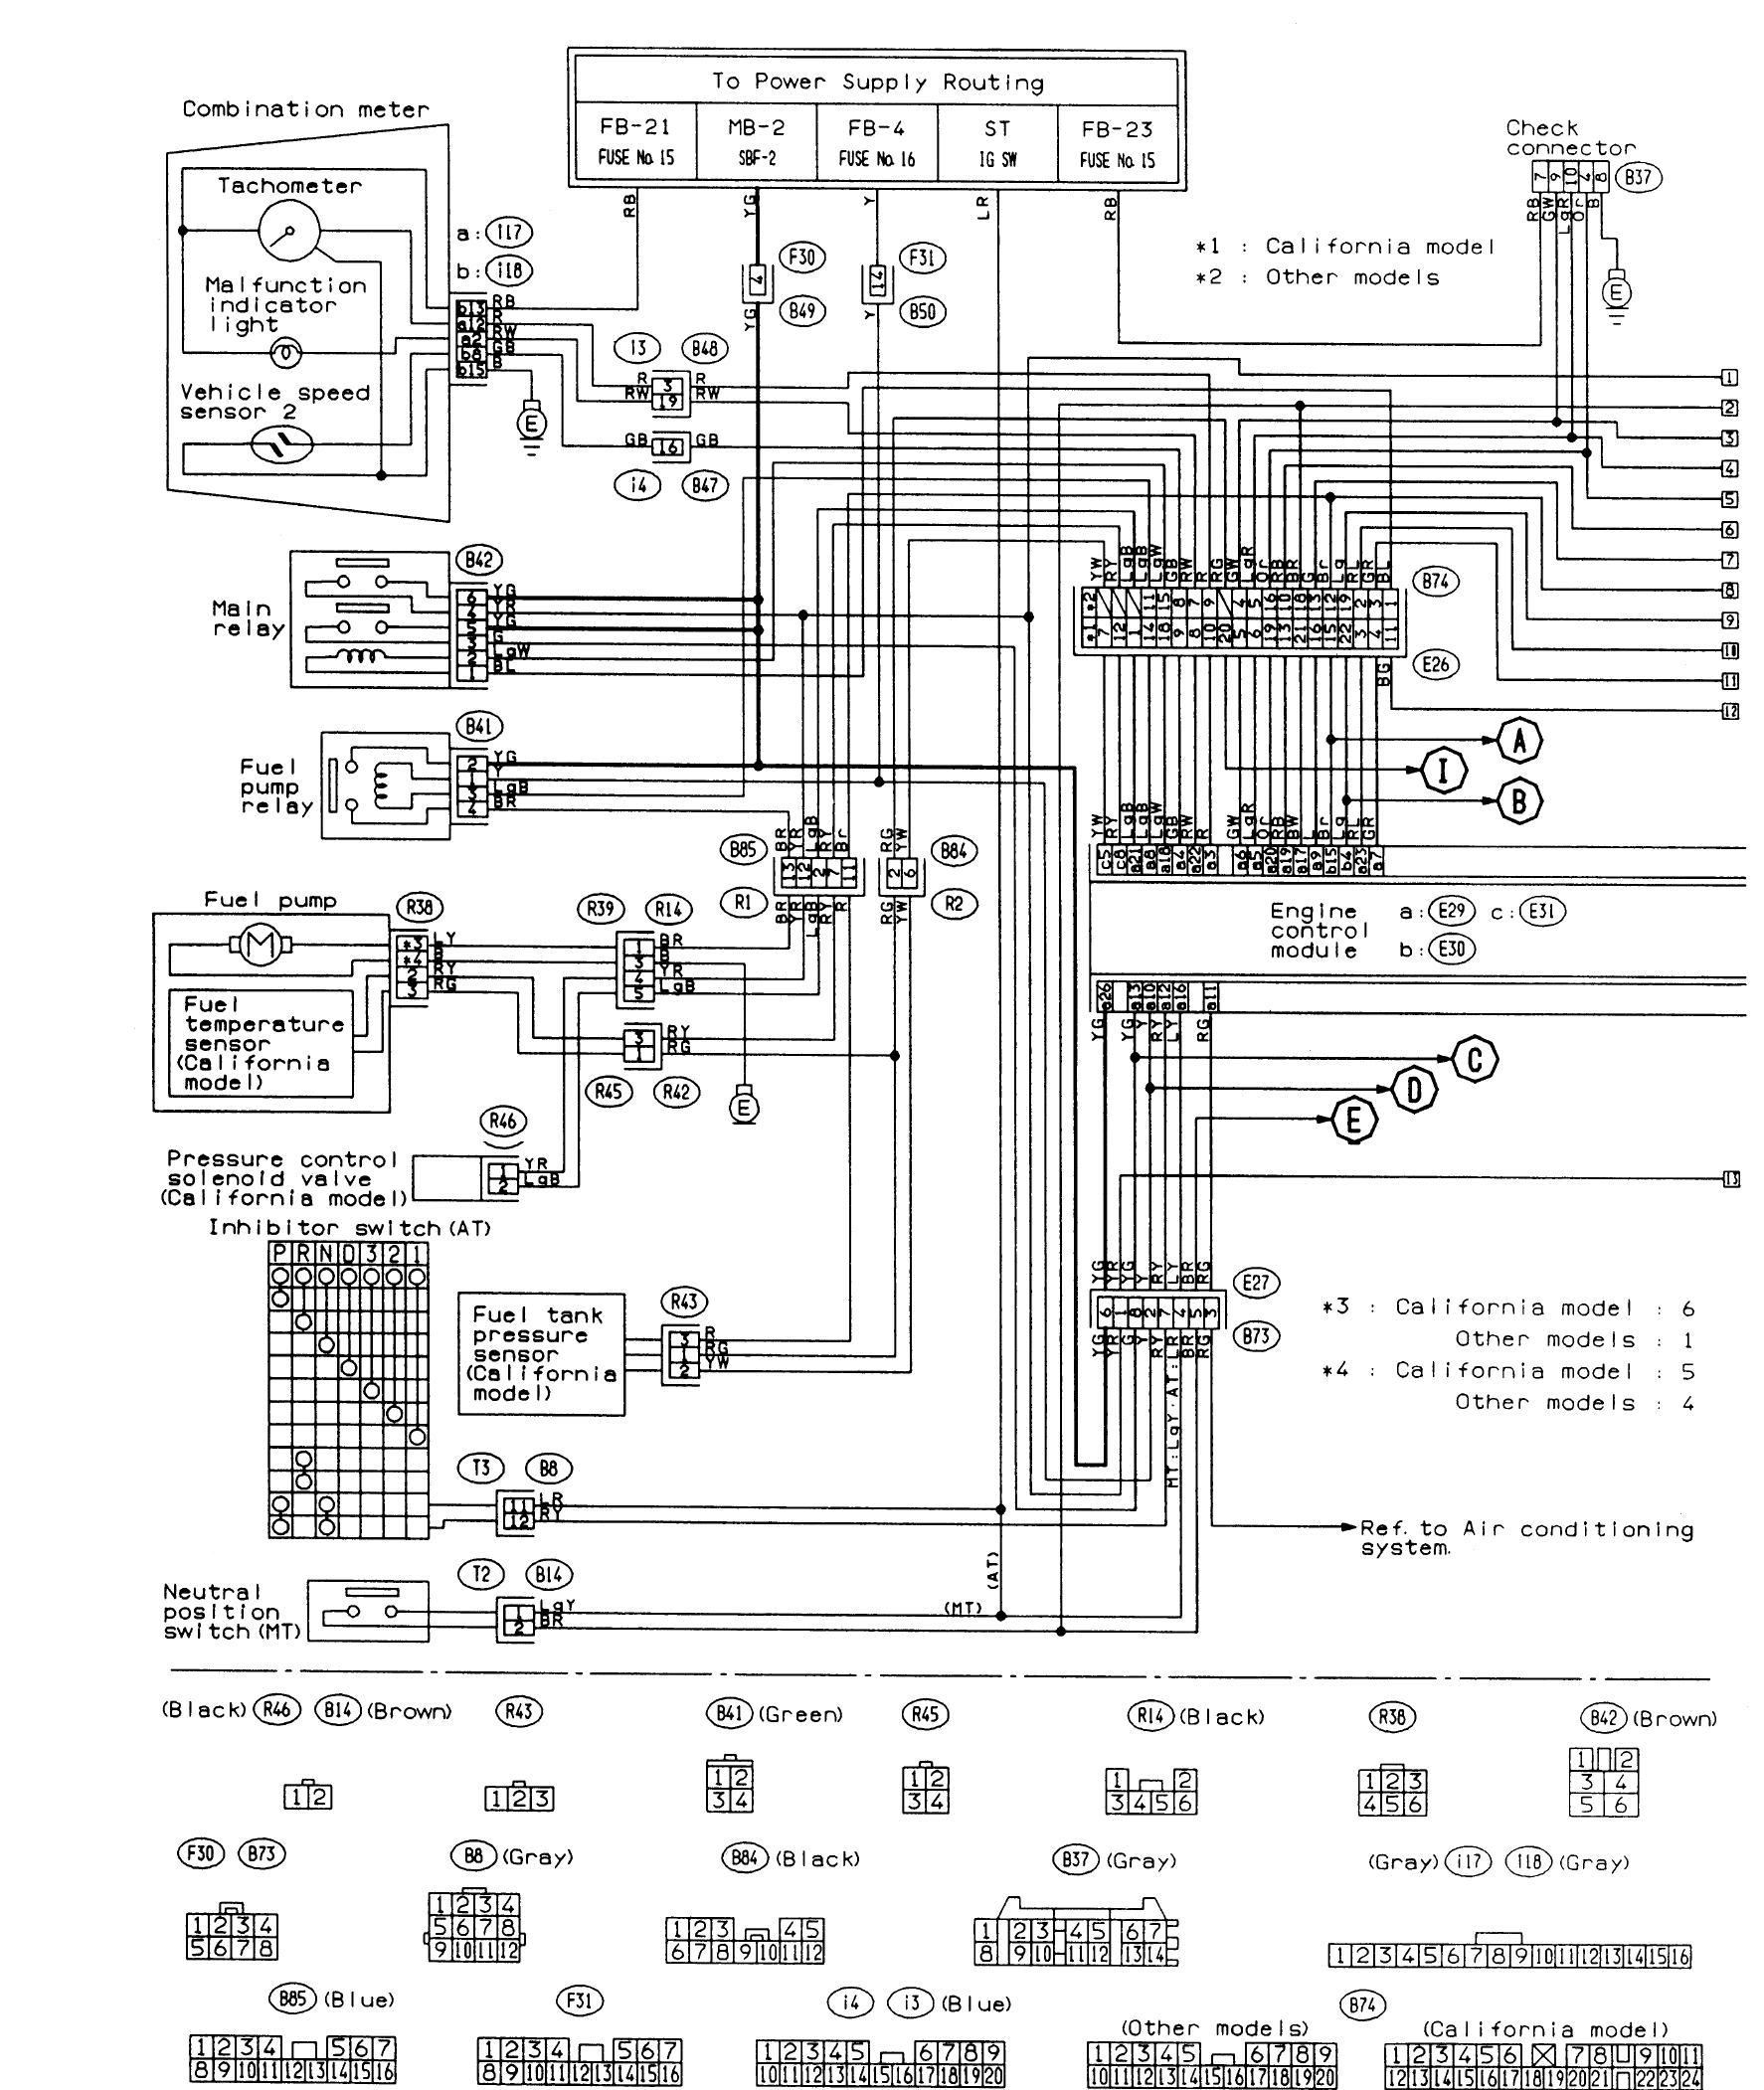 subaru ecu wiring diagram FUSlrCX subaru wiring diagrams 1992 subaru legacy heater wiring schematic Subaru BL at couponss.co